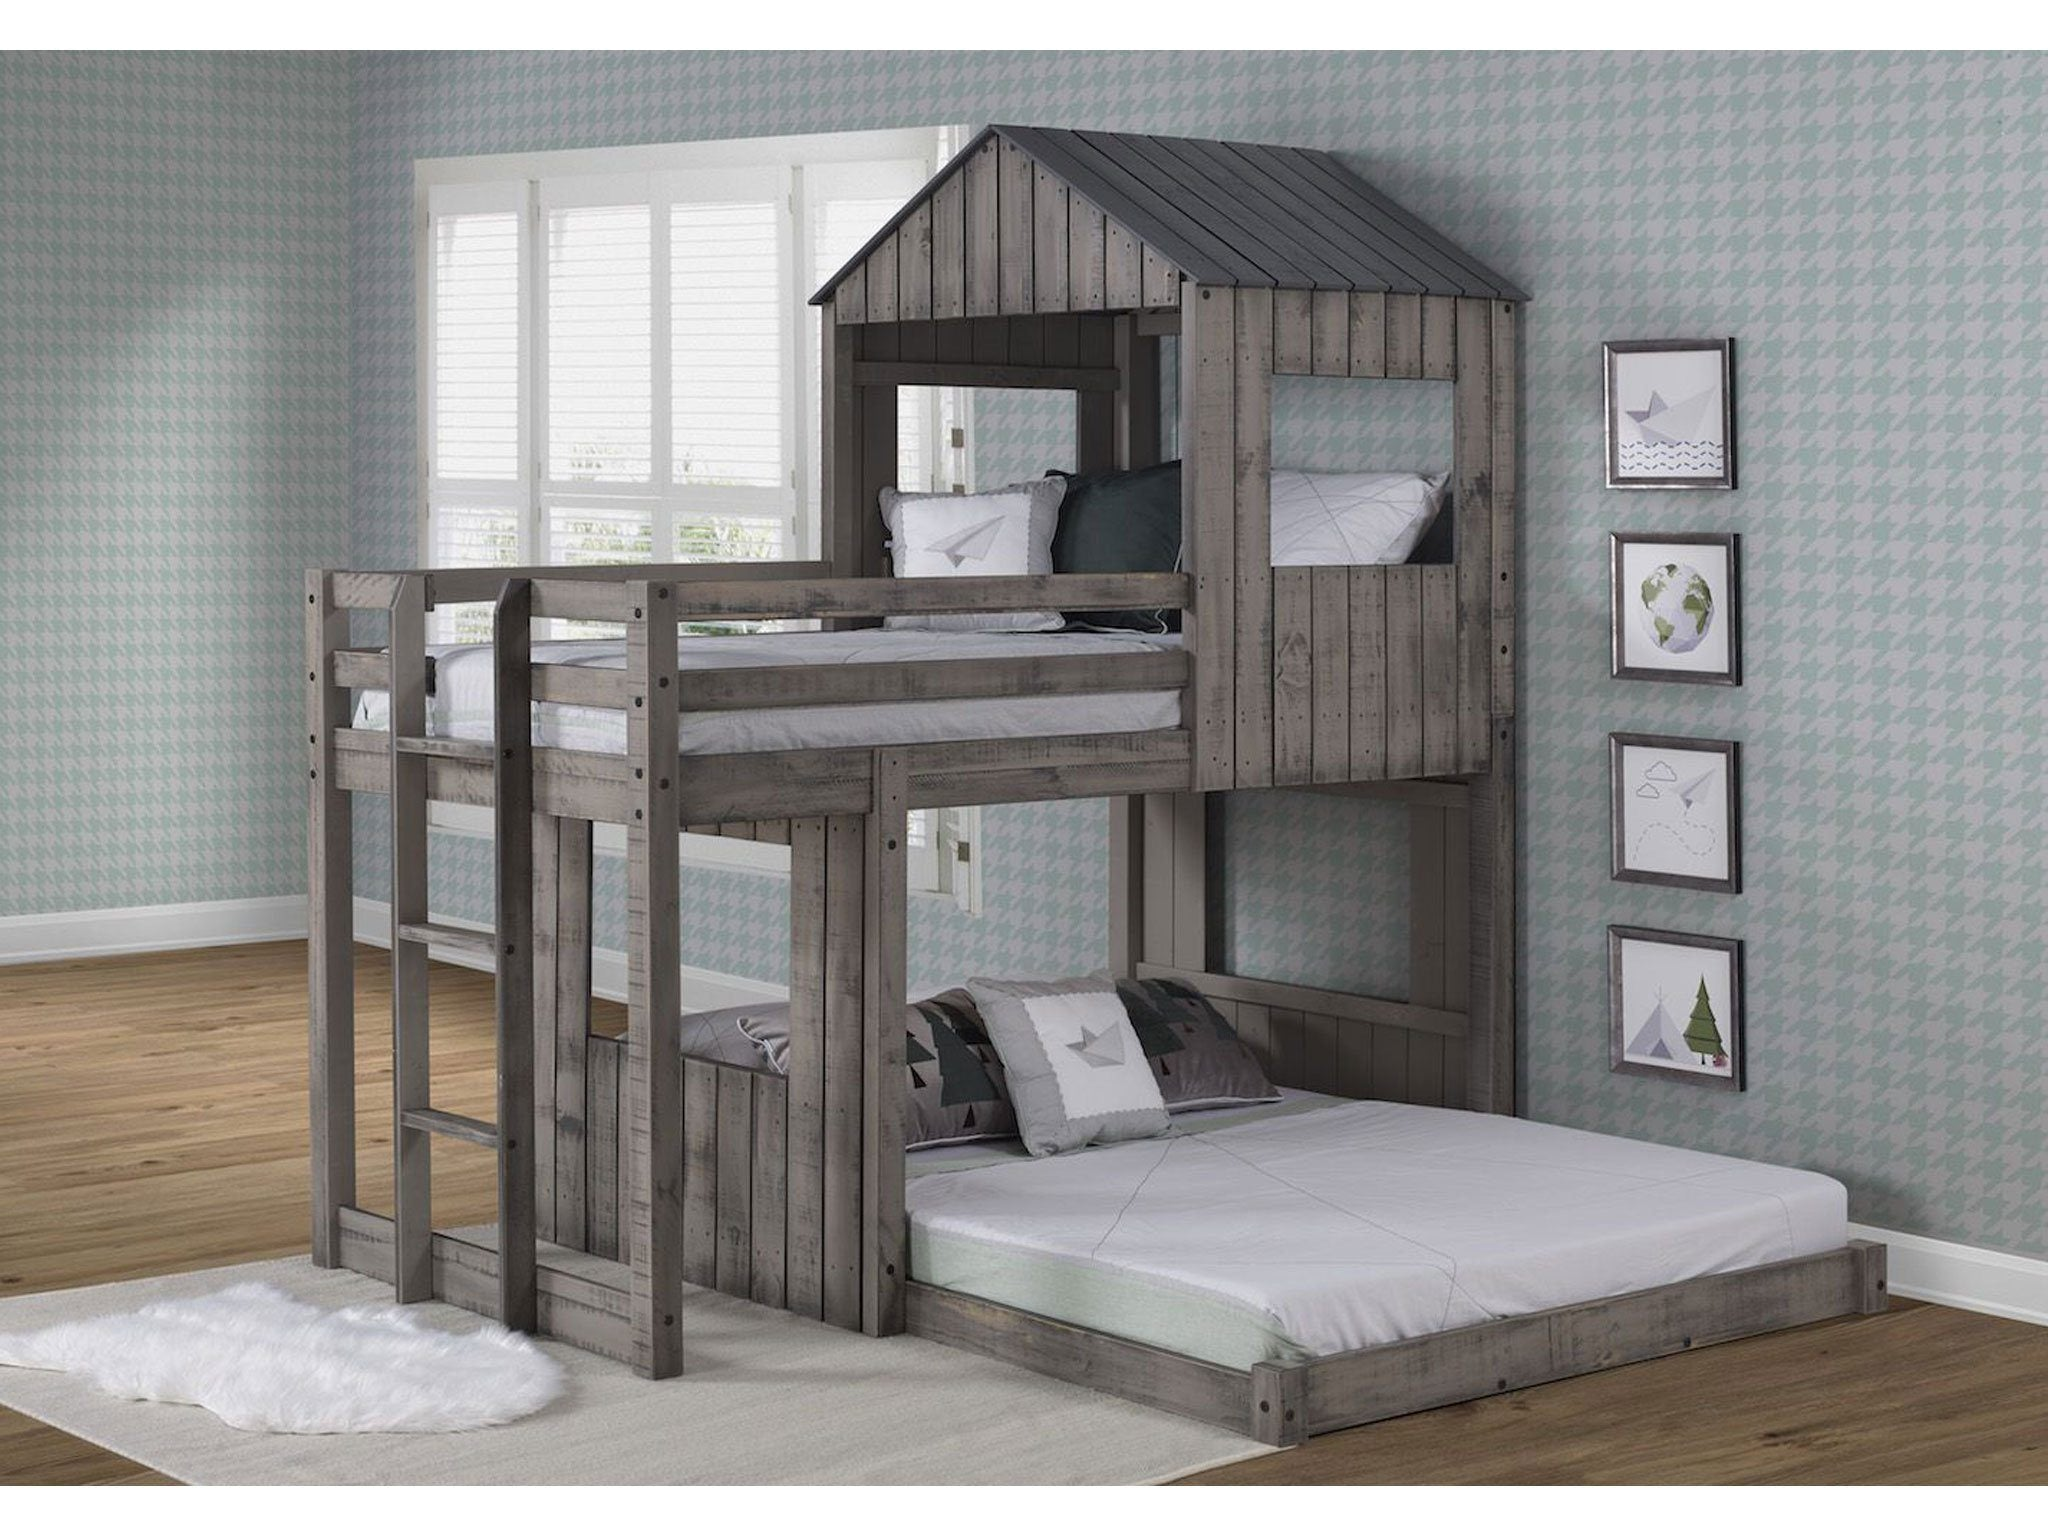 Leeds Twin Over Full Campsite Treehouse Loft Rustic Dirty Grey Bunk Bed Buddies